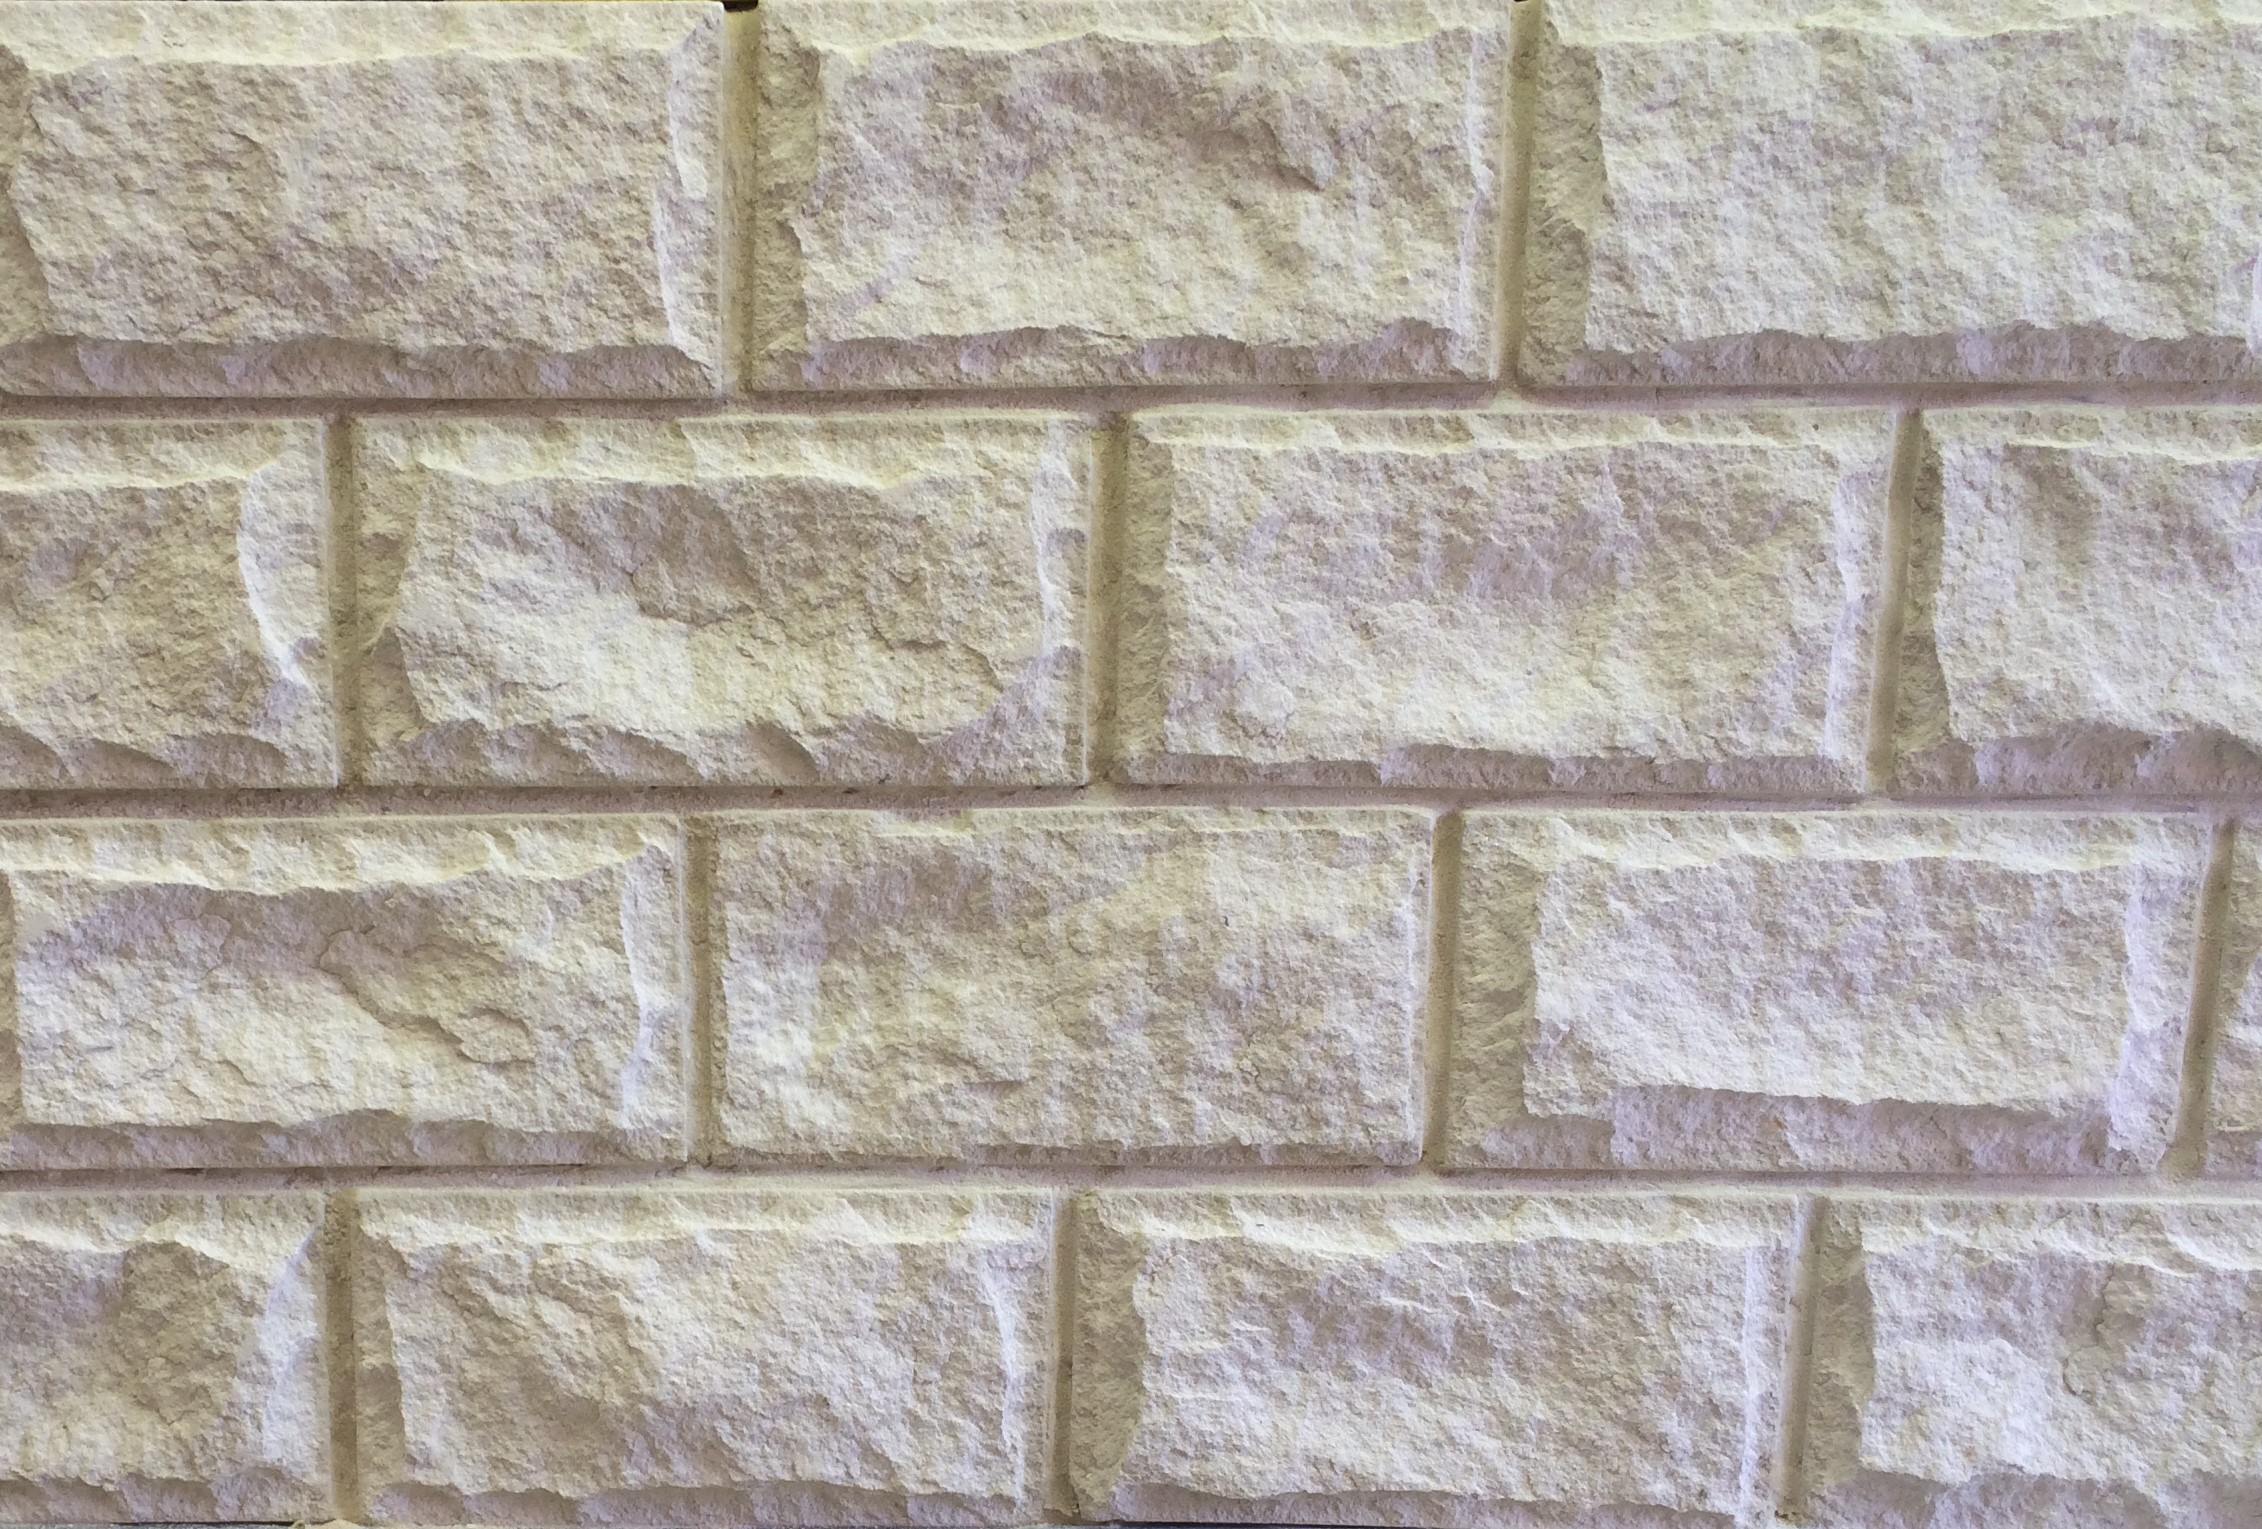 Aussietecture White Rock face wall cladding stone, rockface sandstone